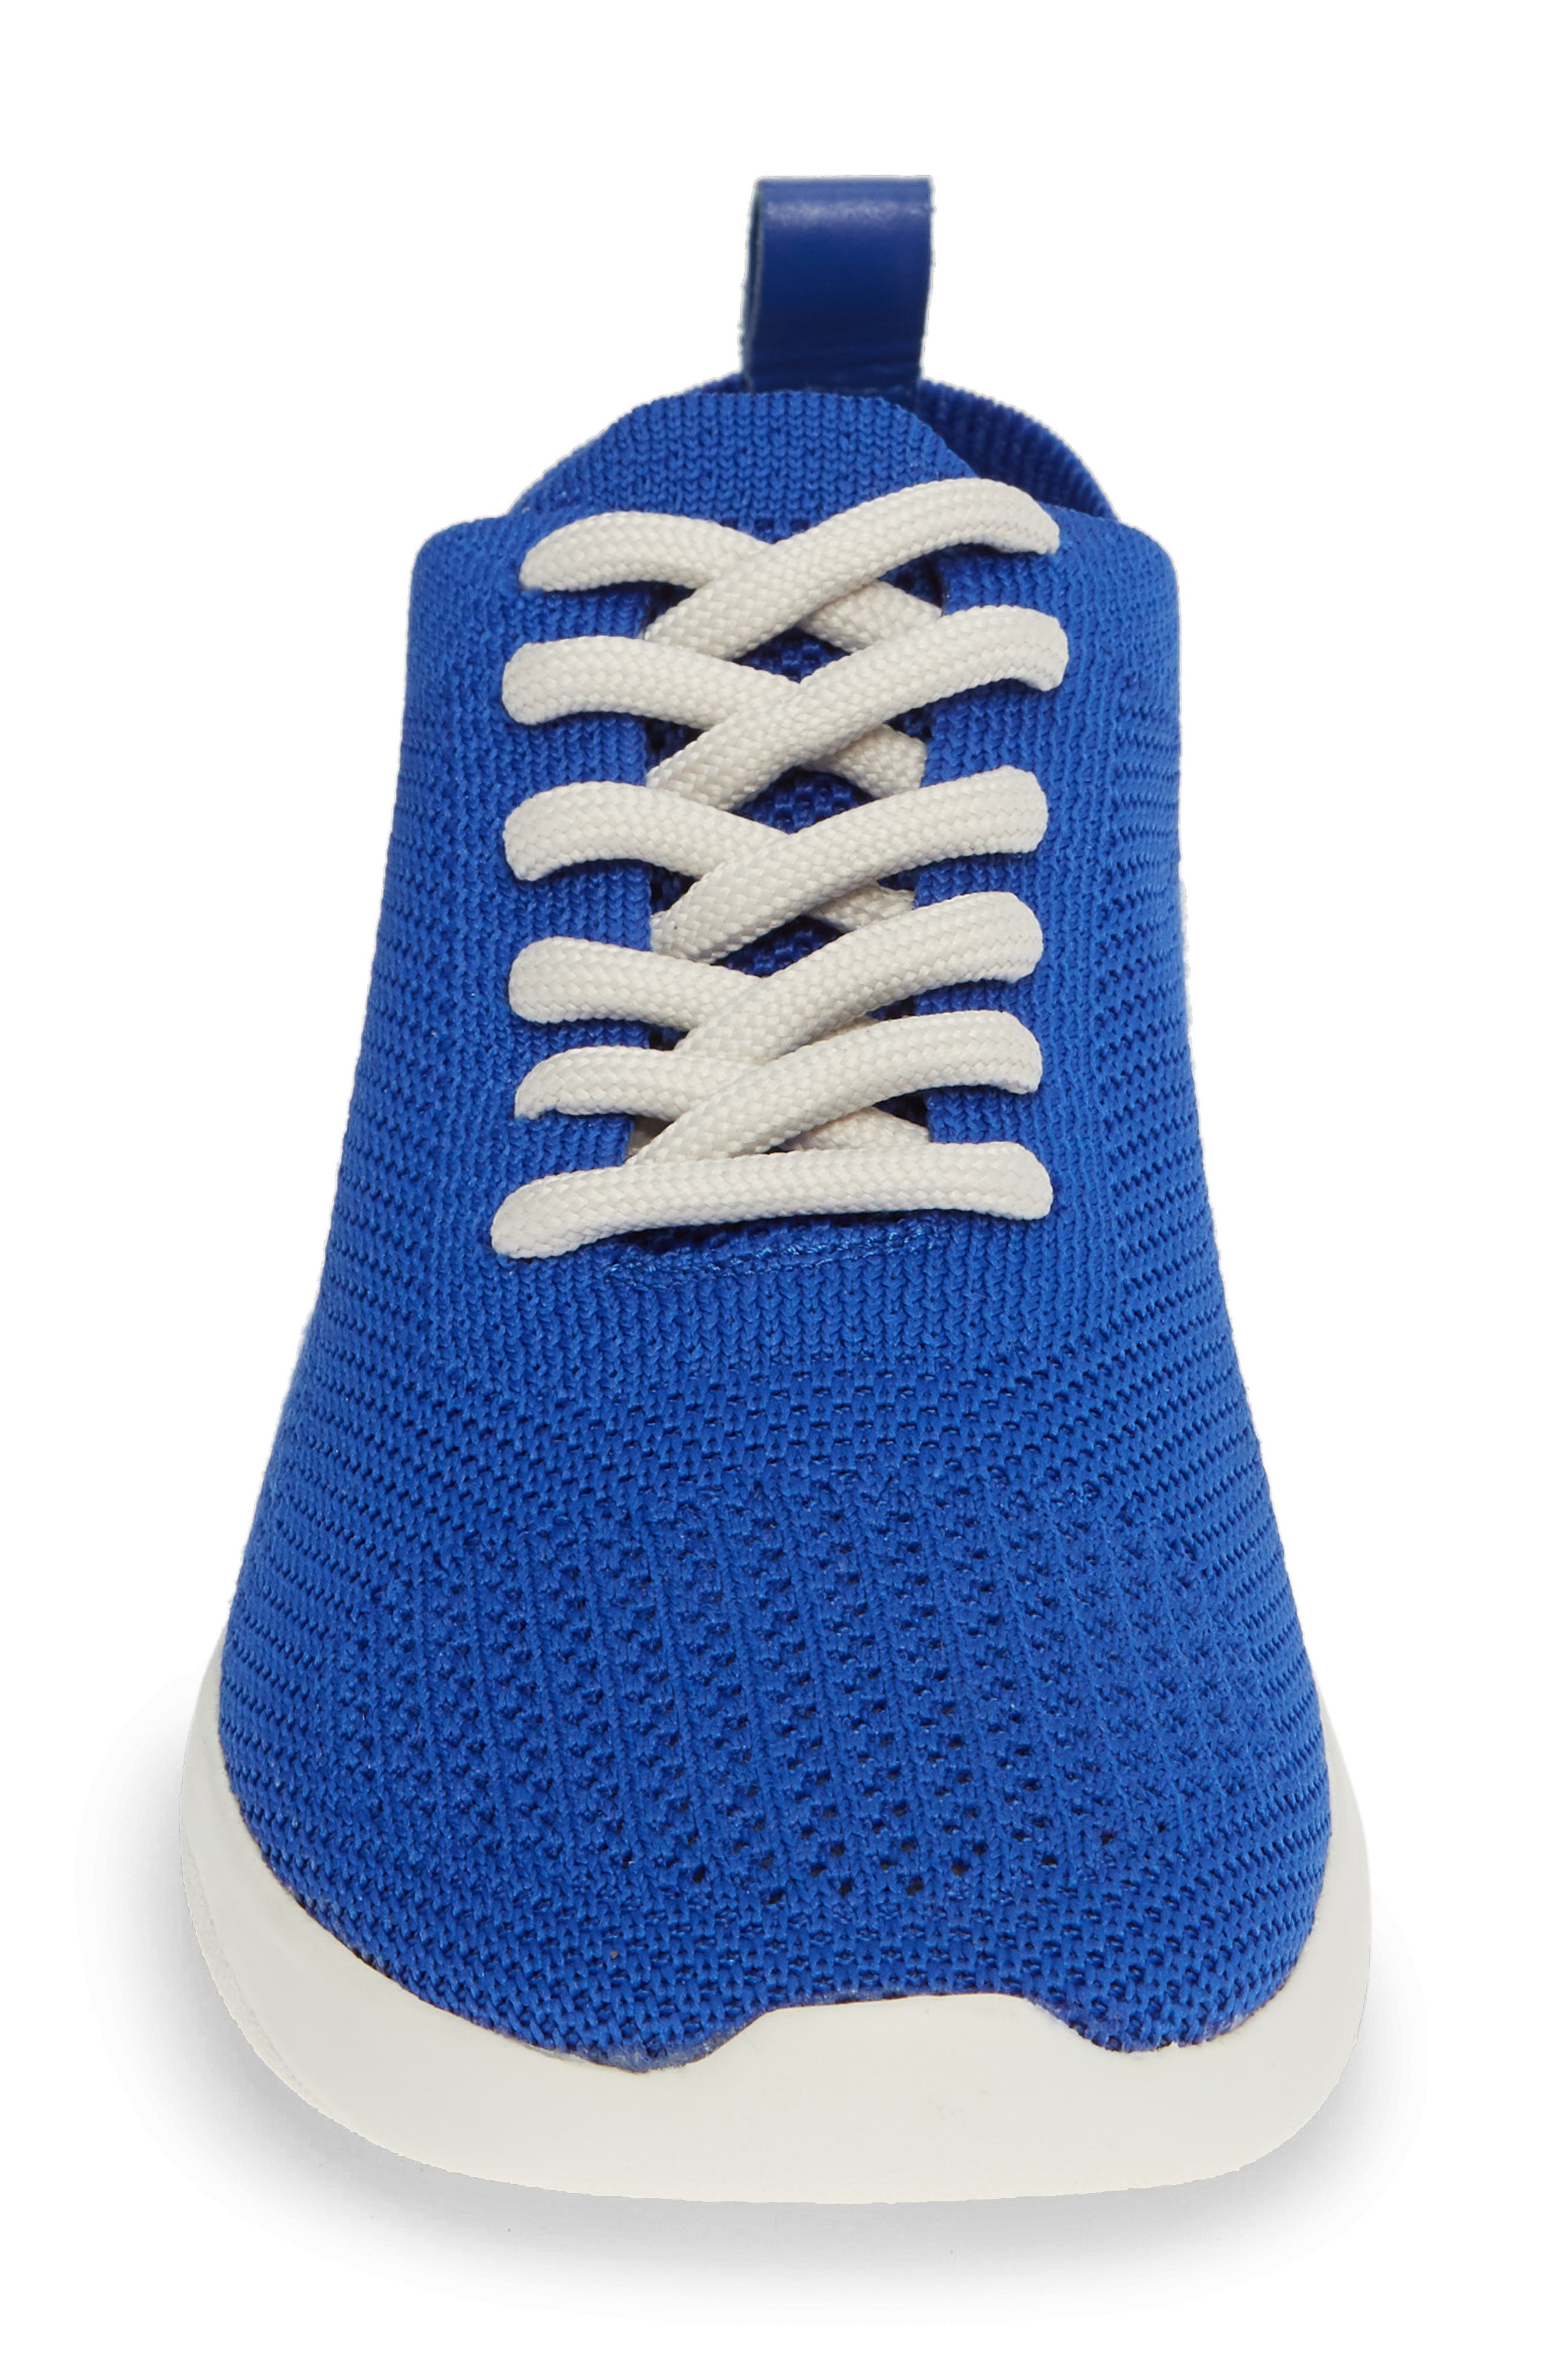 Randee Sneaker,                             Alternate thumbnail 4, color,                             461